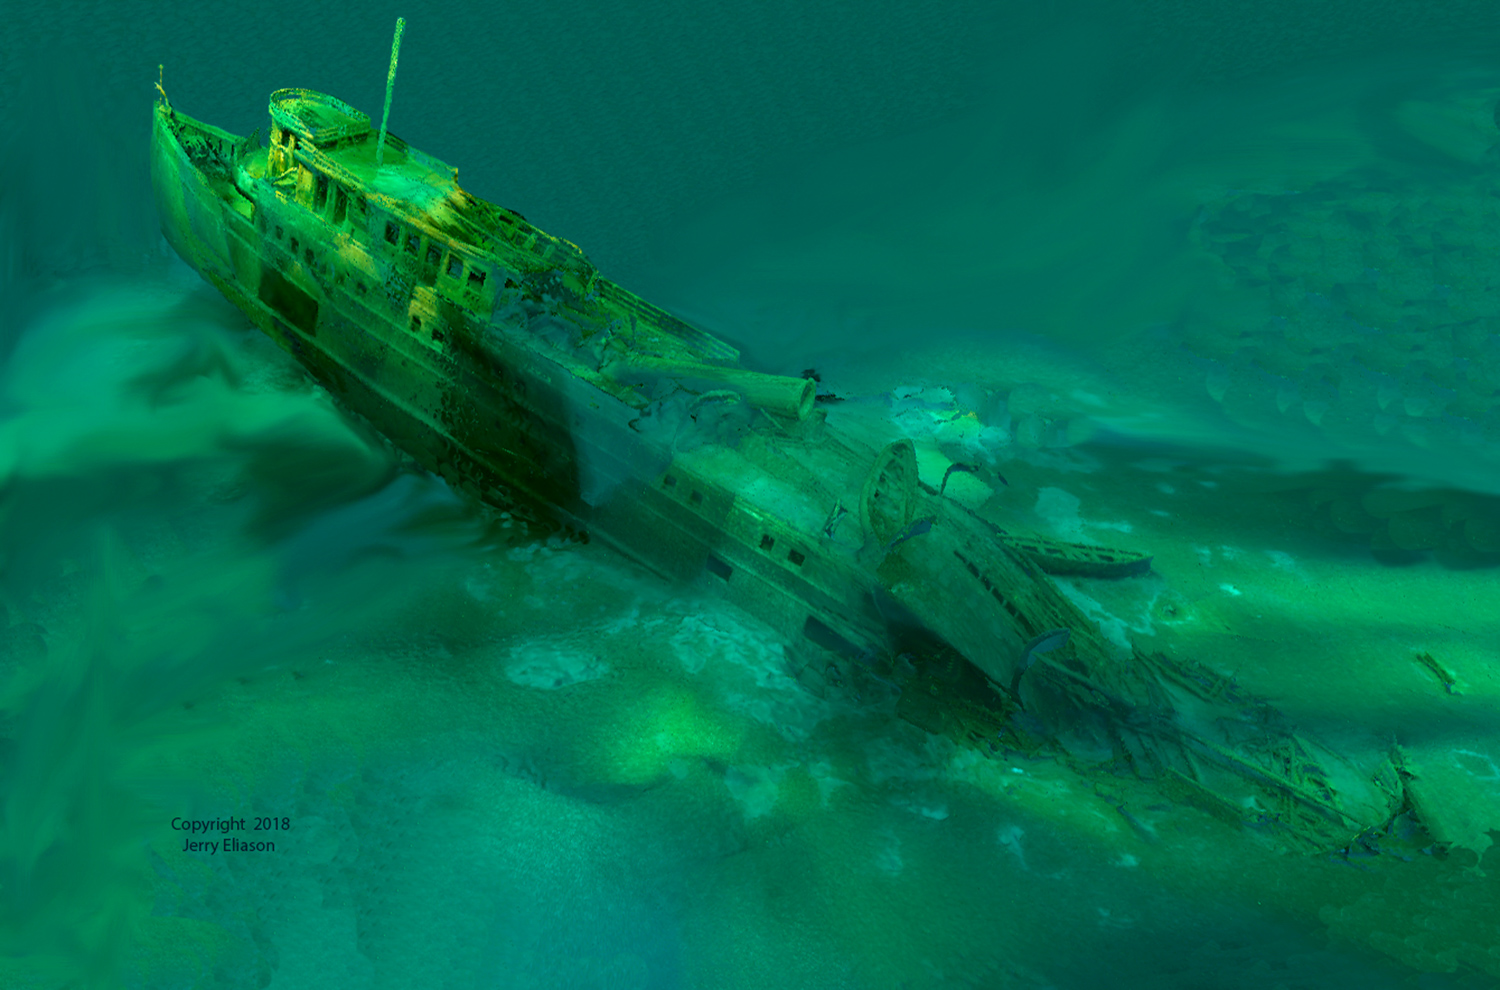 Jerry Eliason's 3D computer image of the MANASOO ship- wreck shows the dramatic angle of its bow.